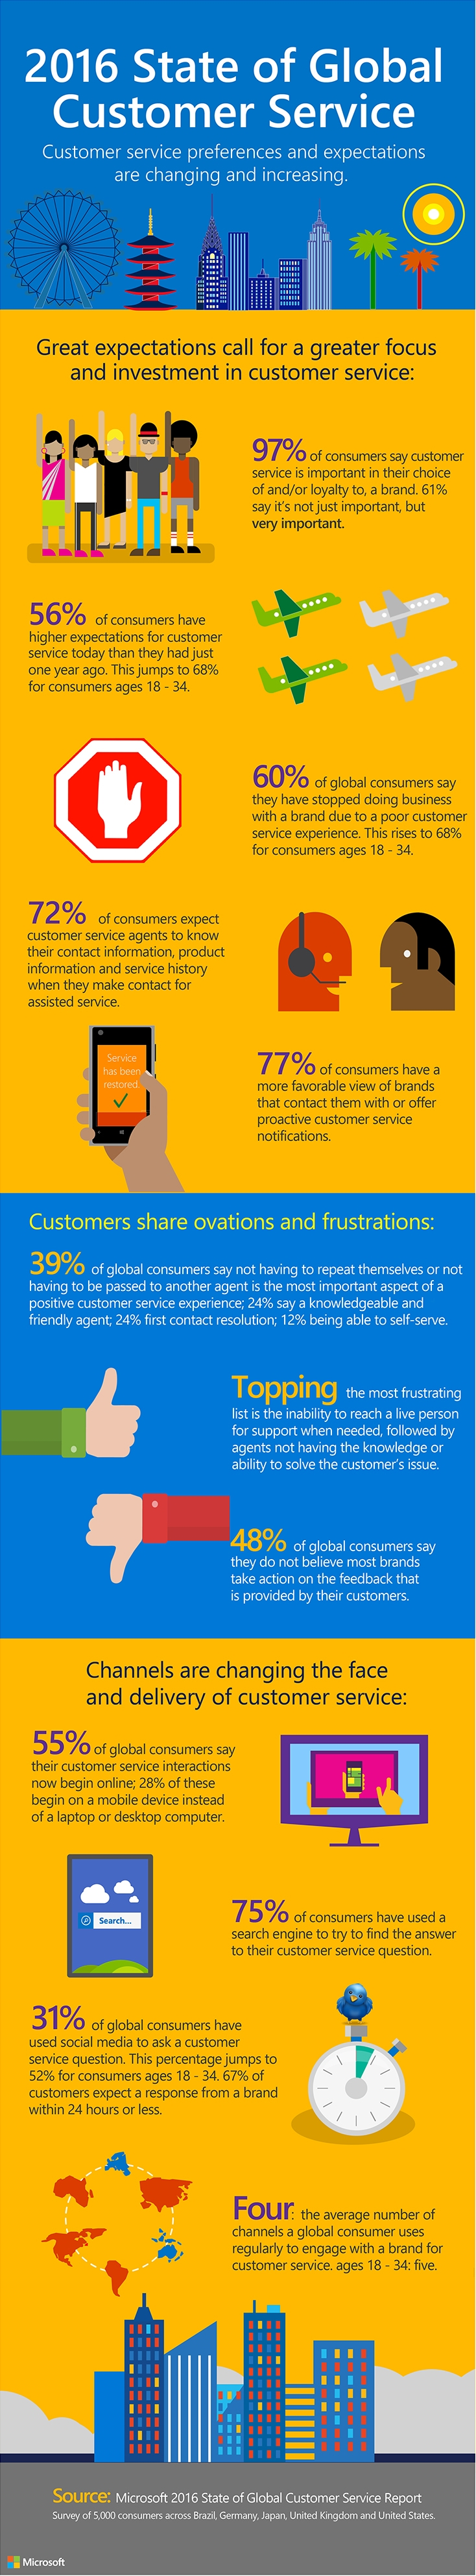 2845.2016_Global_Customer_Service_Infographic.jpg-750x0